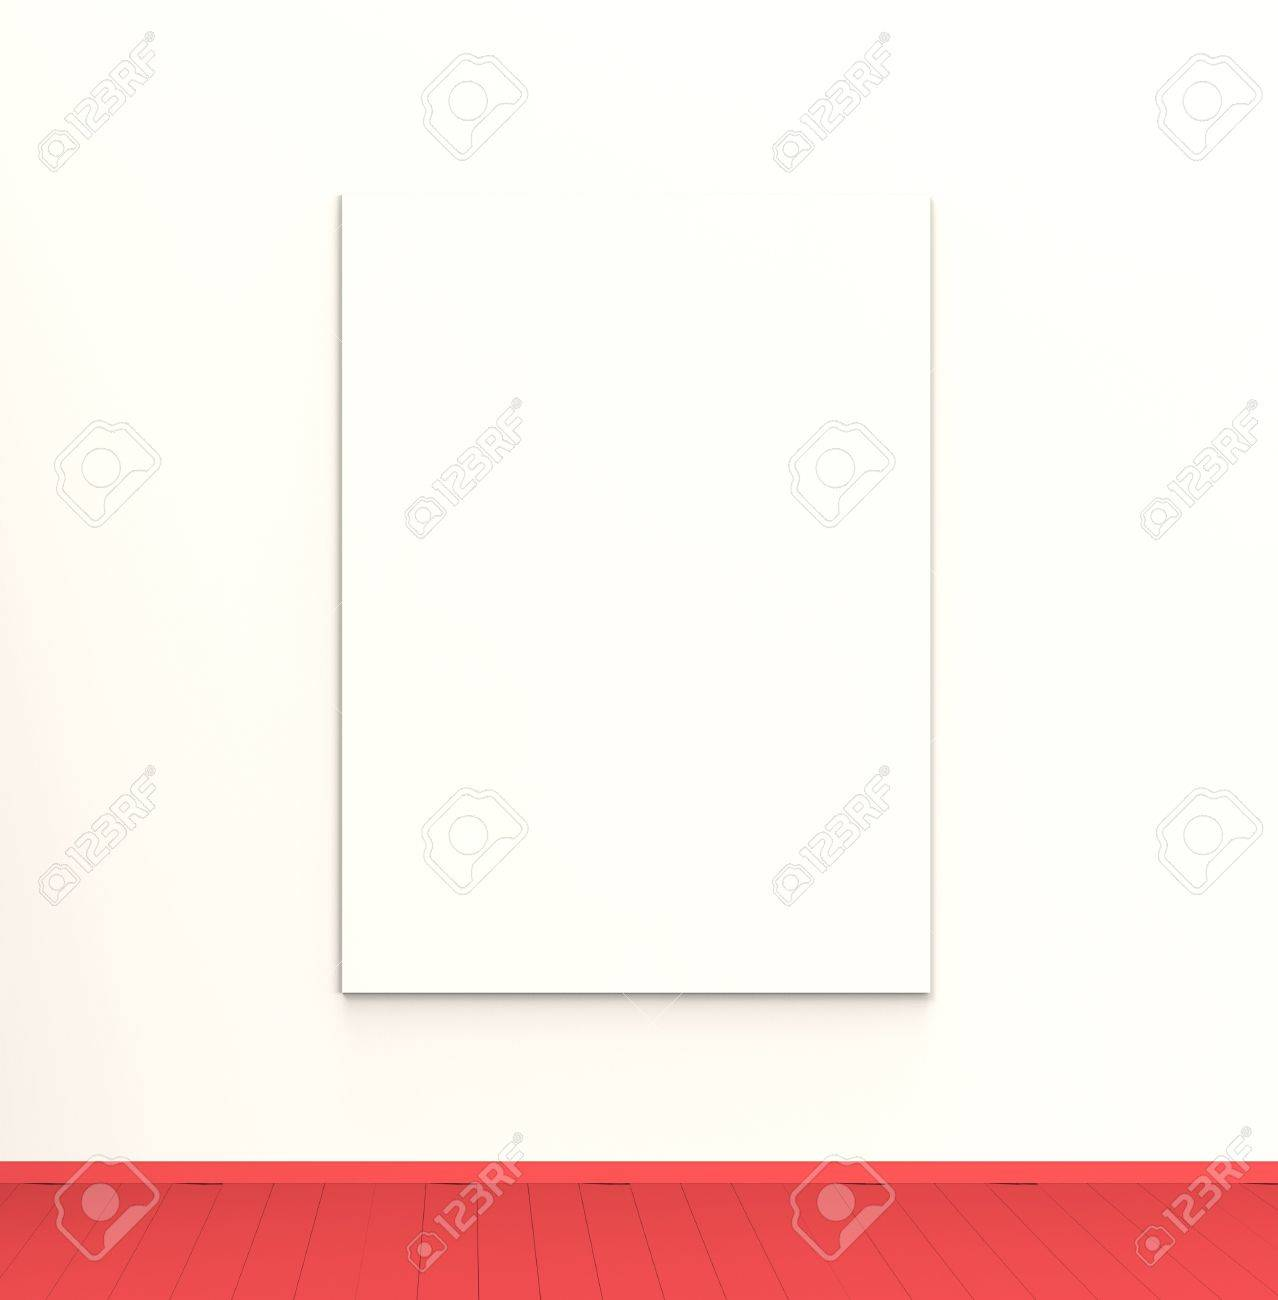 A blank canvas hanging in a beautiful modern interior  You an easily insert your own artwork or message Stock Photo - 19532238